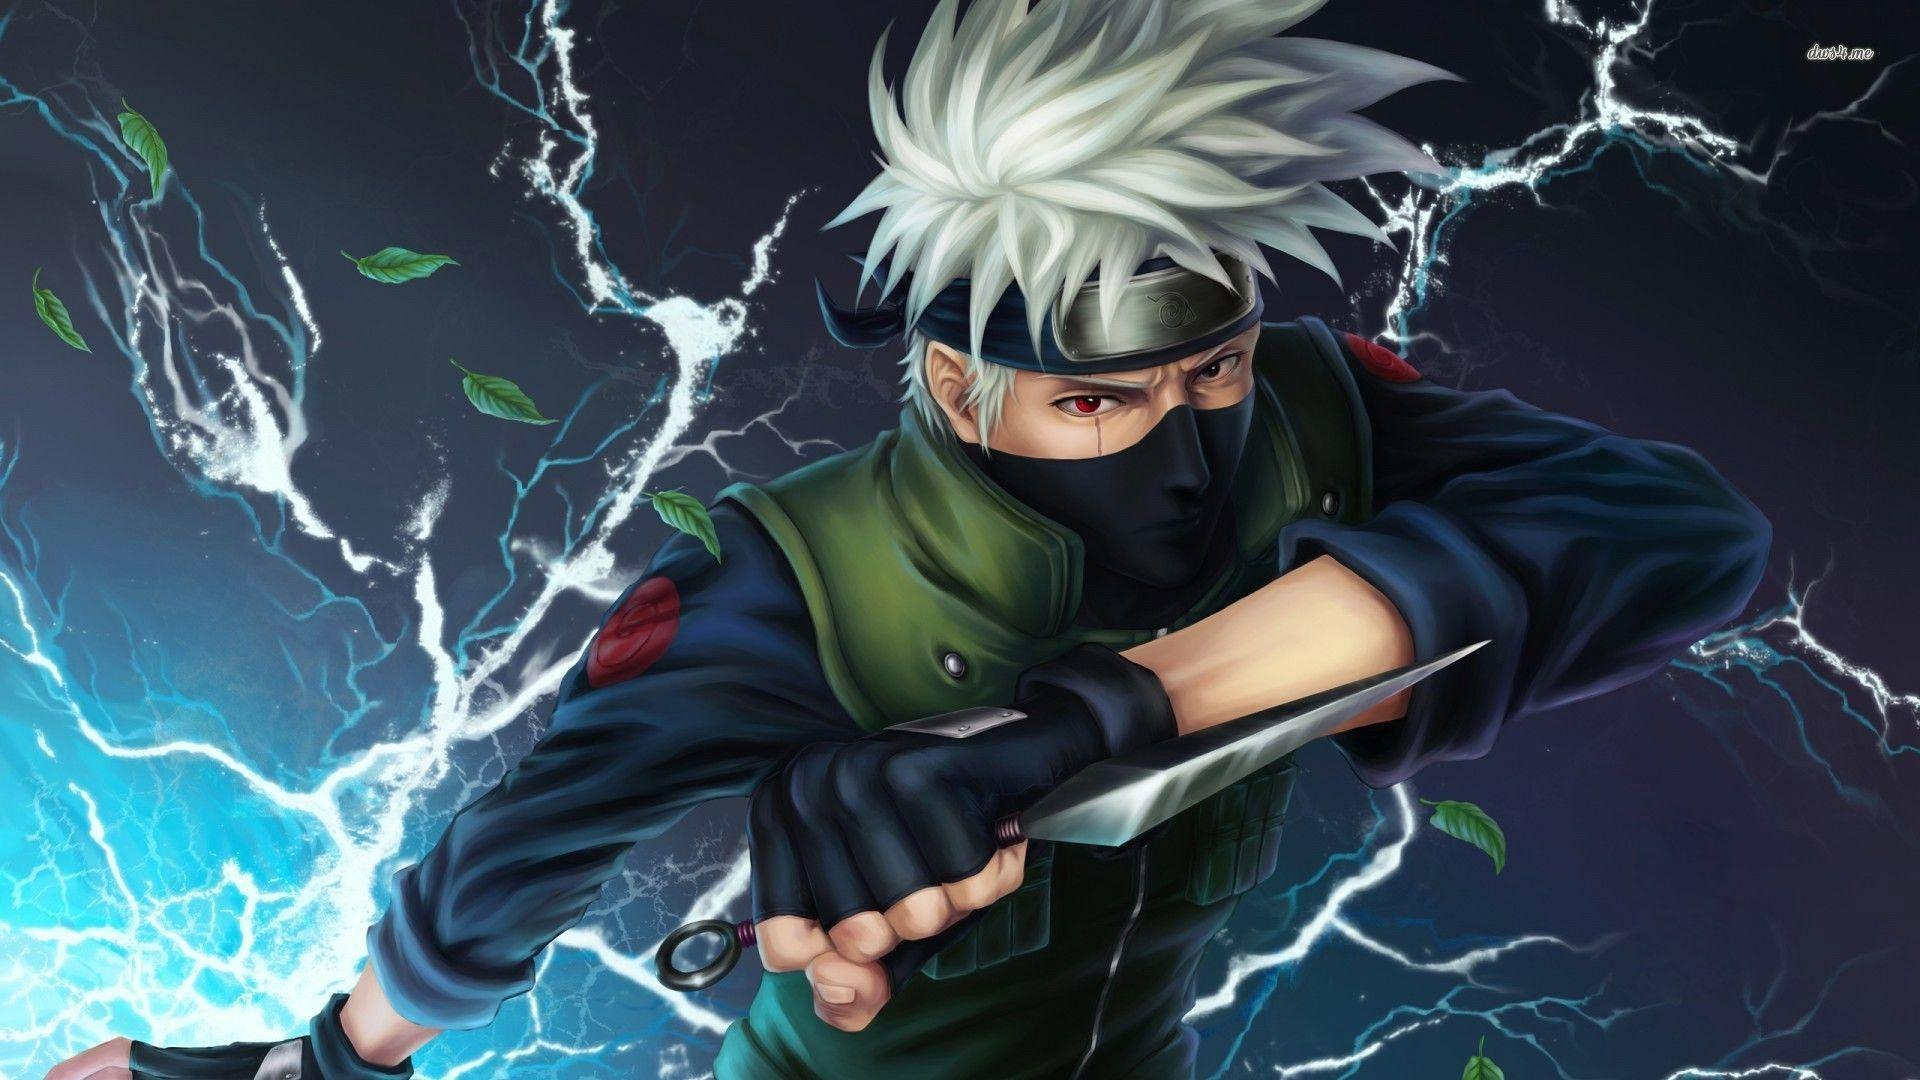 Naruto kakashi wallpapers wallpaper cave - Kakashi sensei wallpaper ...